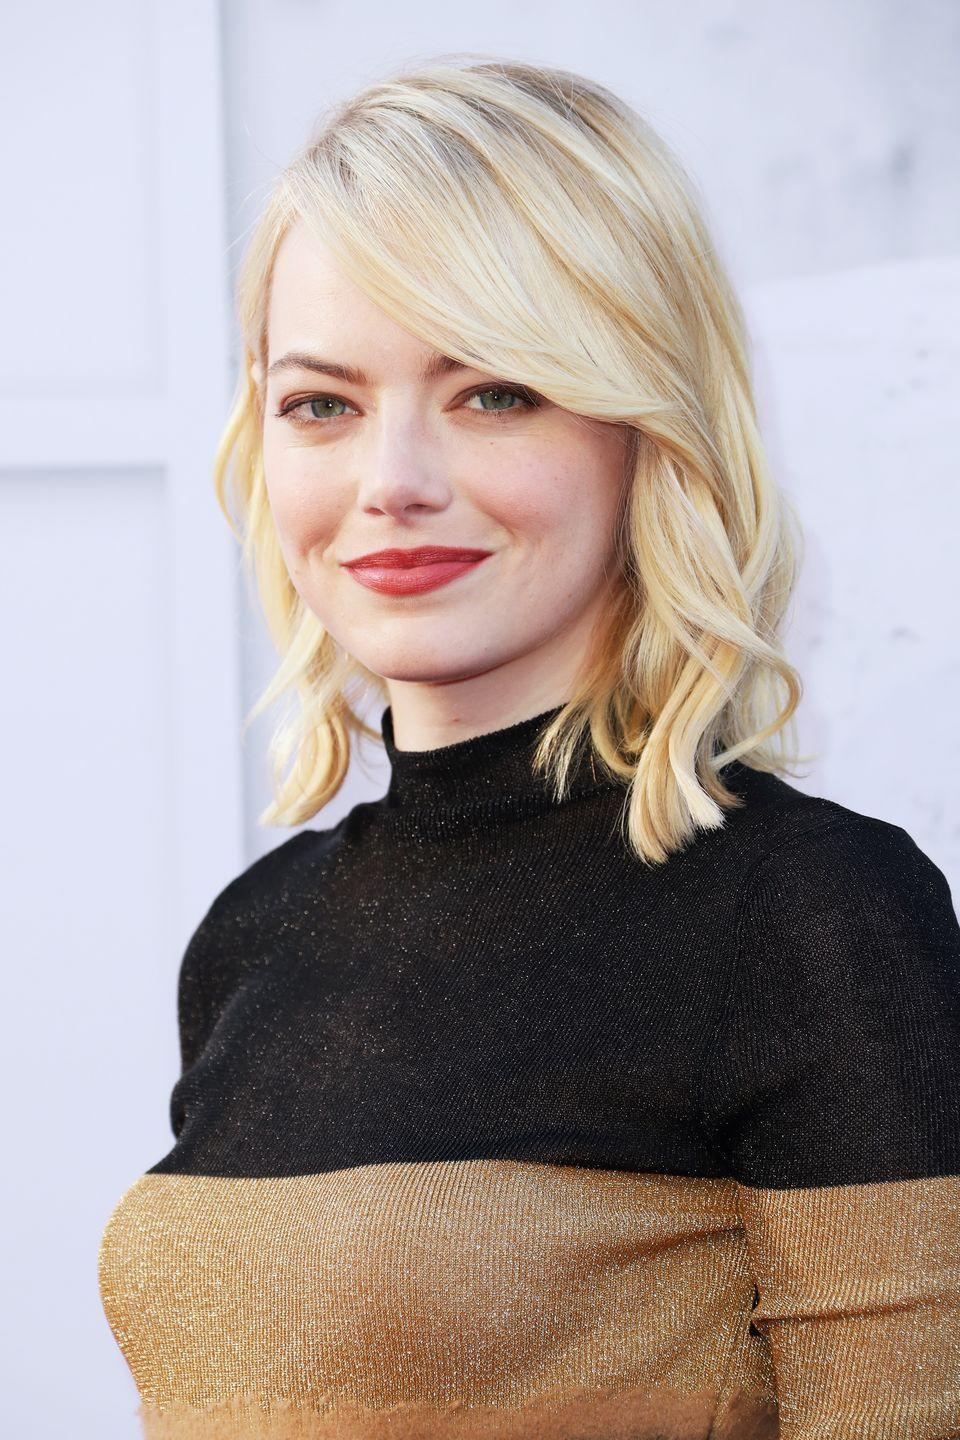 <p>Emma Stone knows how to wear a side-swept lob so well. The fact that her bangs fall heavier on one side takes attention away from symmetrical features of found faces, and draws more attention to elongate her chin. </p>